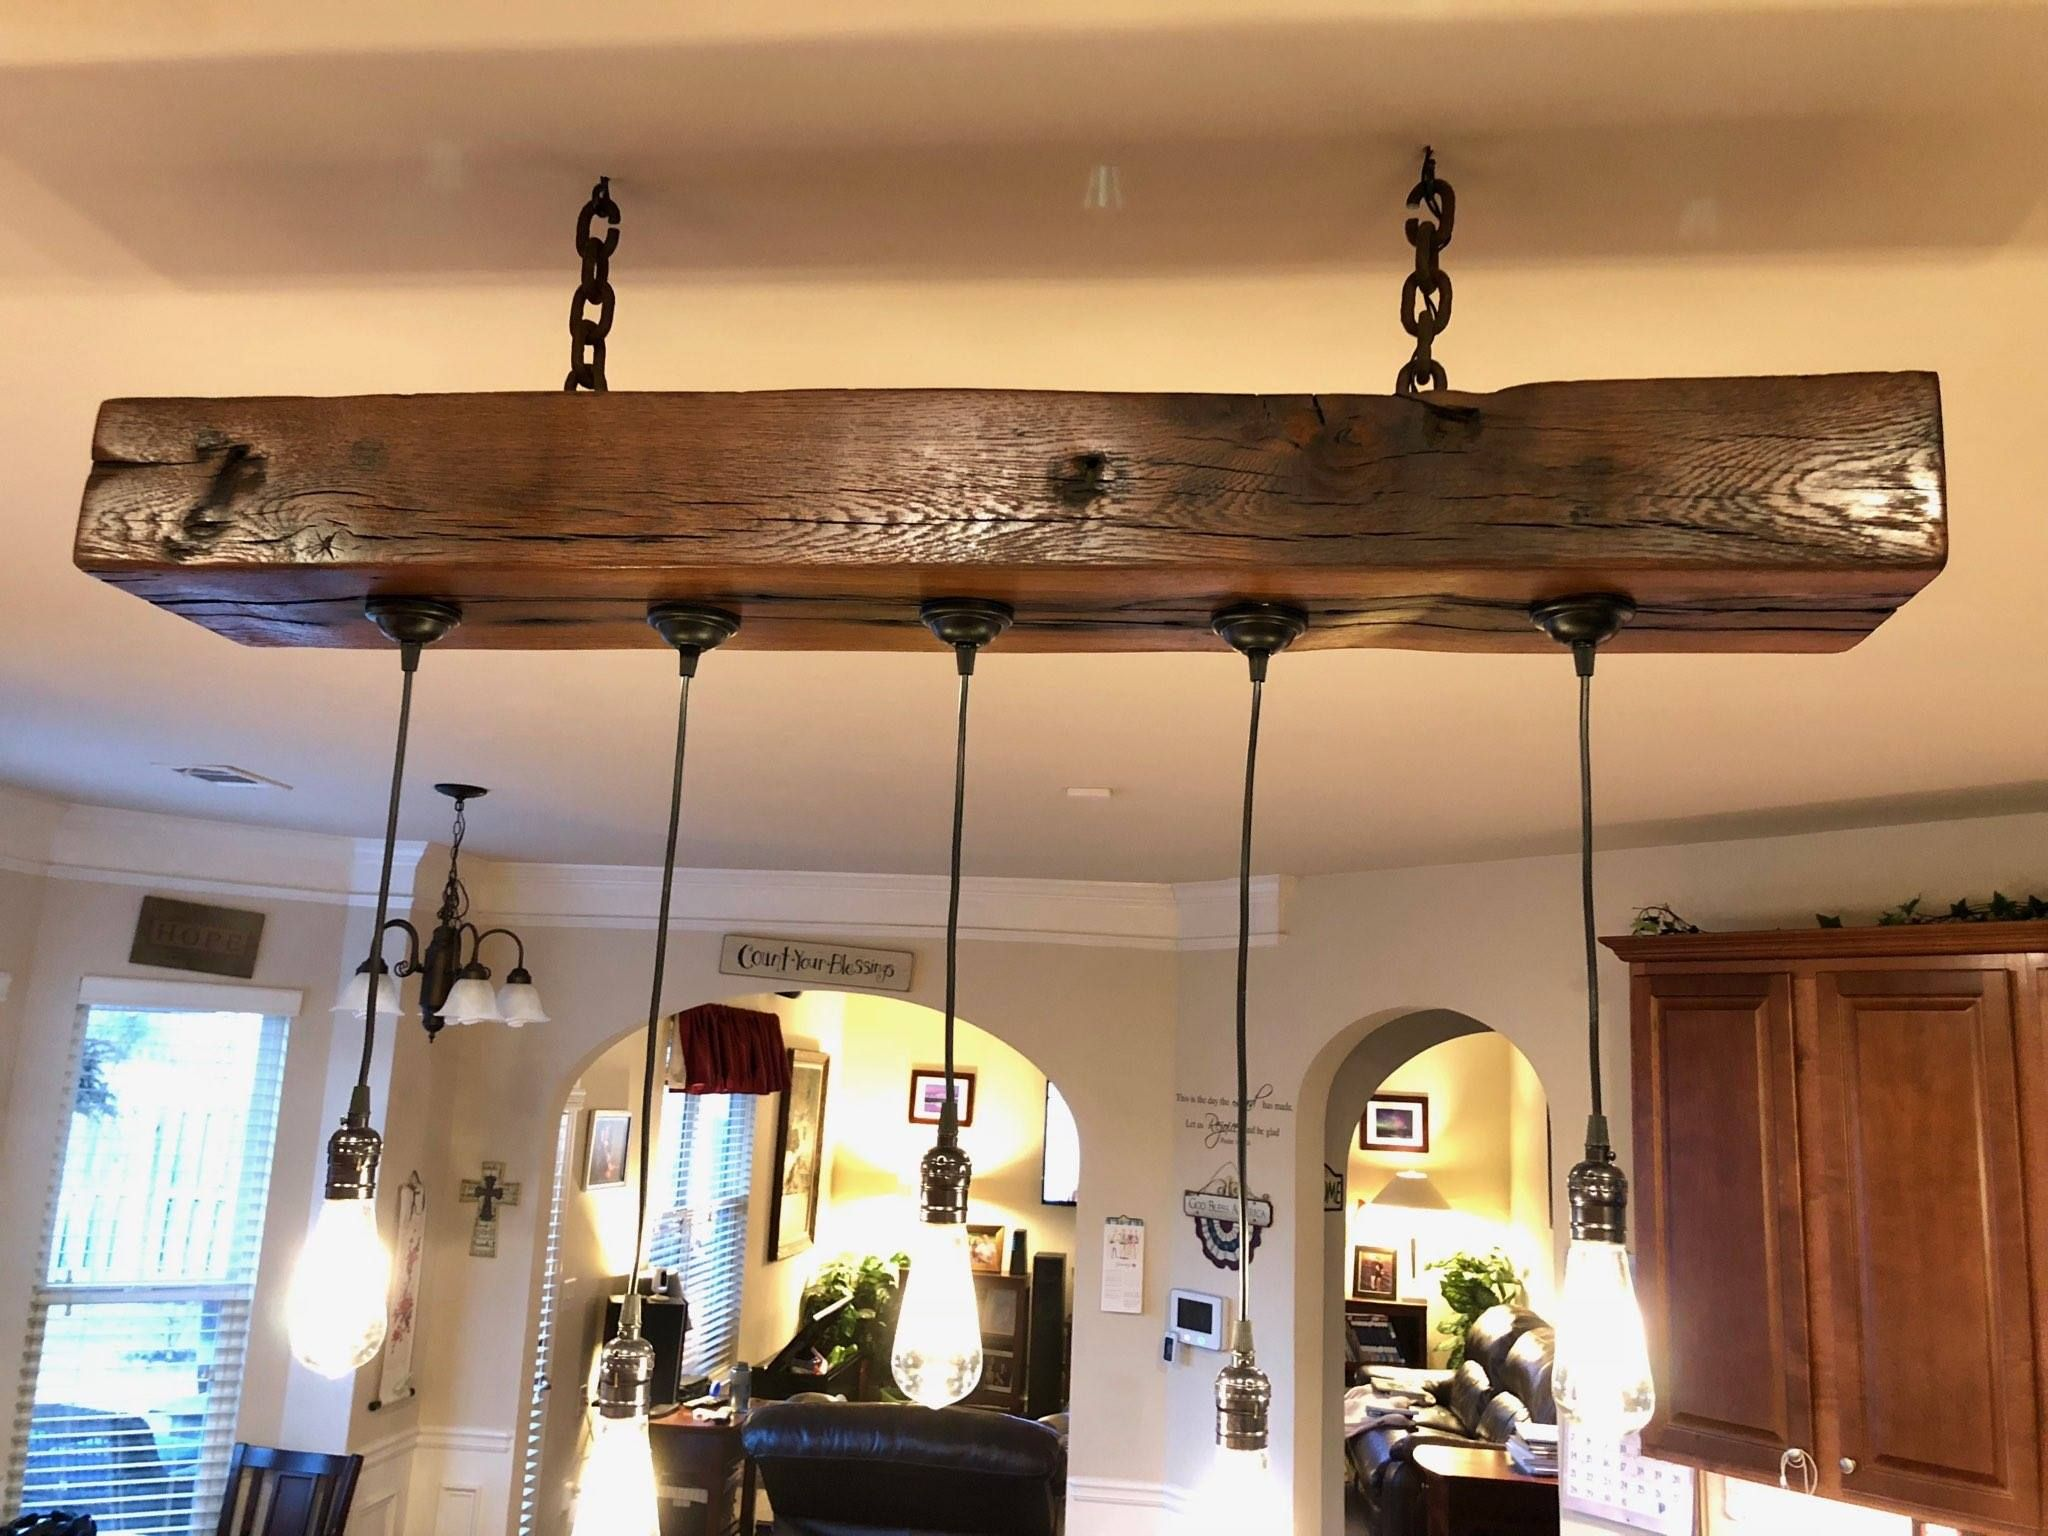 Scott hamilton of greenville sc made this beautiful light fixture using one of our reclaimed beams i love the mix of rustic wood and the contemporary